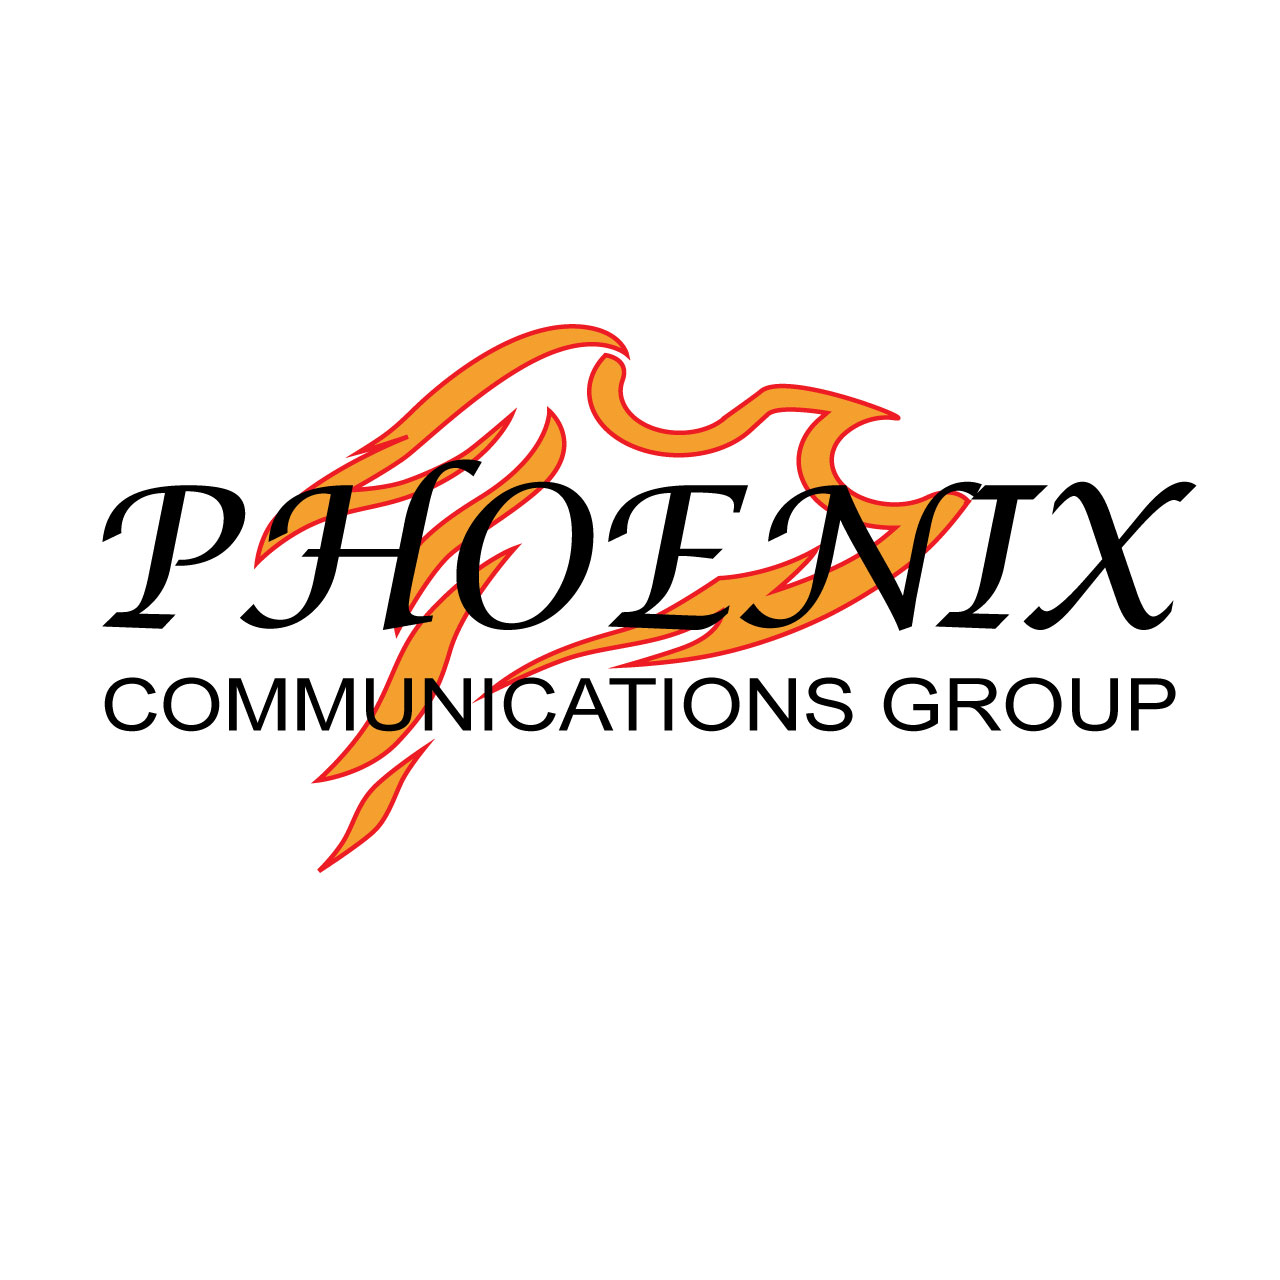 Logo Design by Ethan Waller - Entry No. 17 in the Logo Design Contest Phoenix Communications Group.